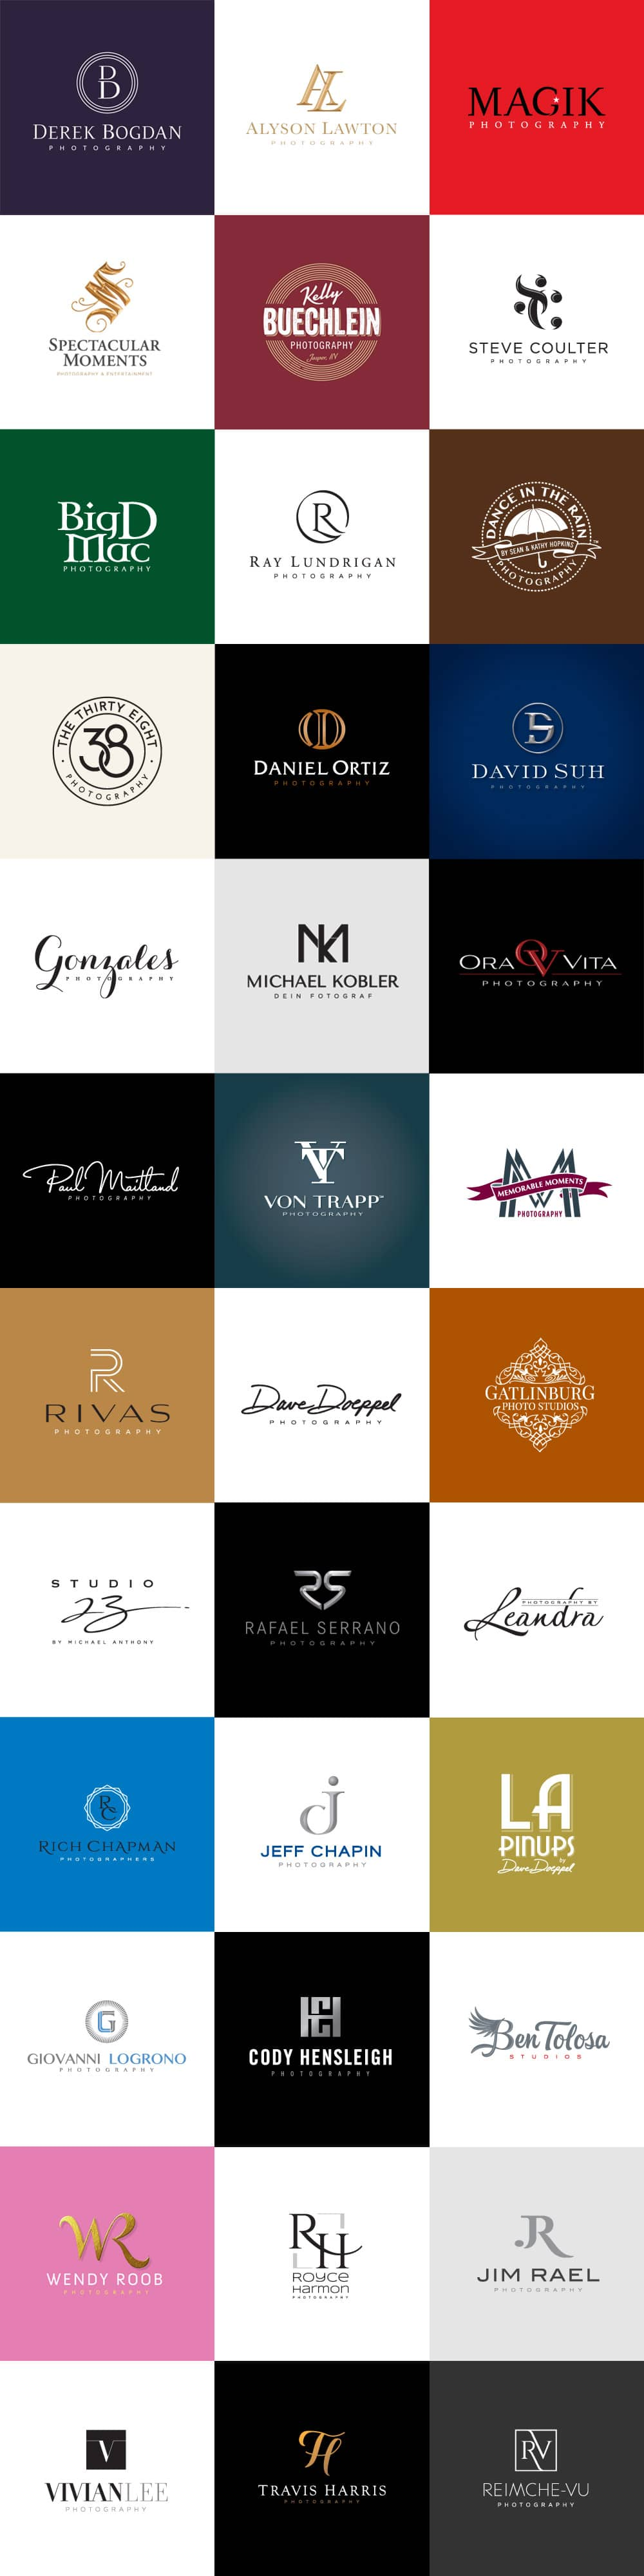 photographers logo designs